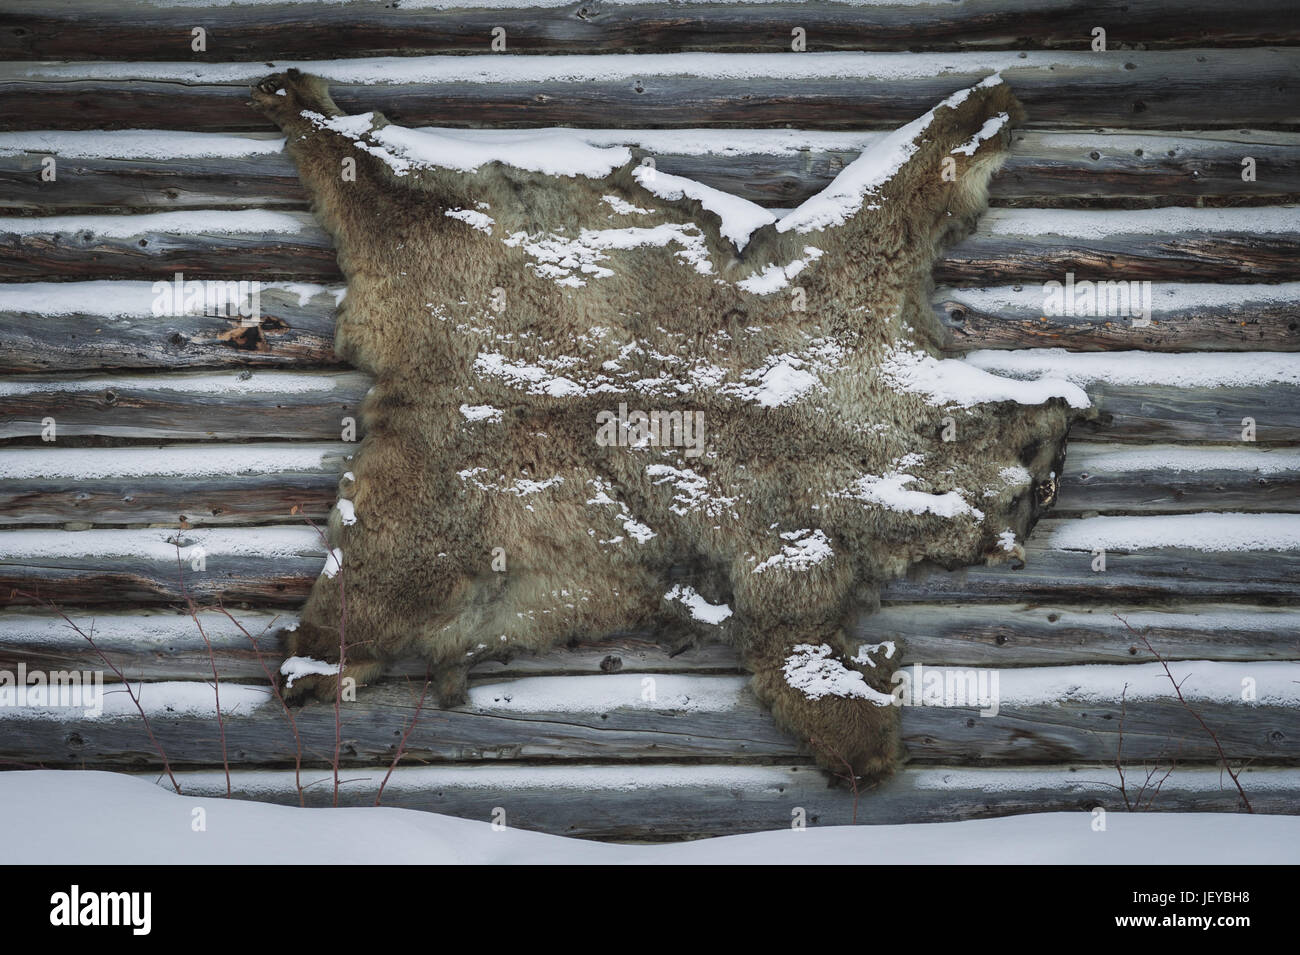 Bear skin mounted on the wall of a traditional log cabin in winter. - Stock Image